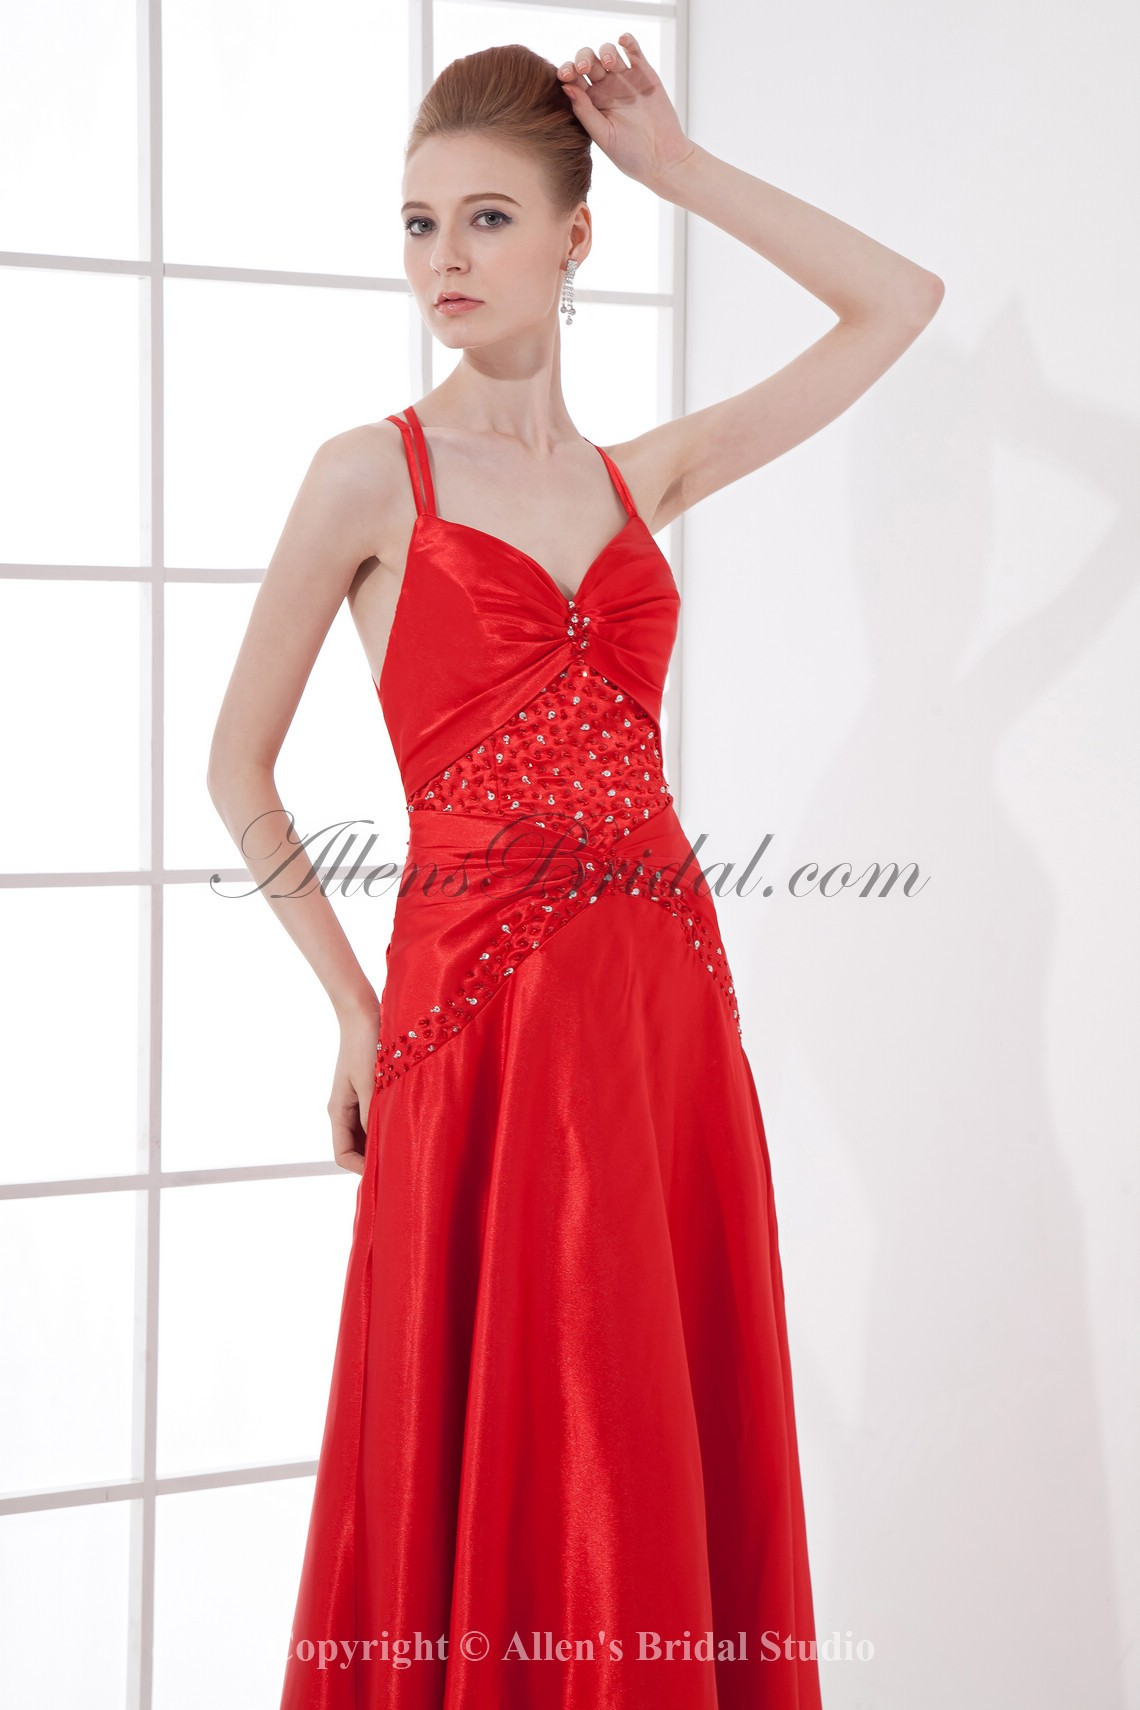 /72-574/satin-spaghetti-neckline-a-line-ankle-length-sequins-prom-dress.jpg